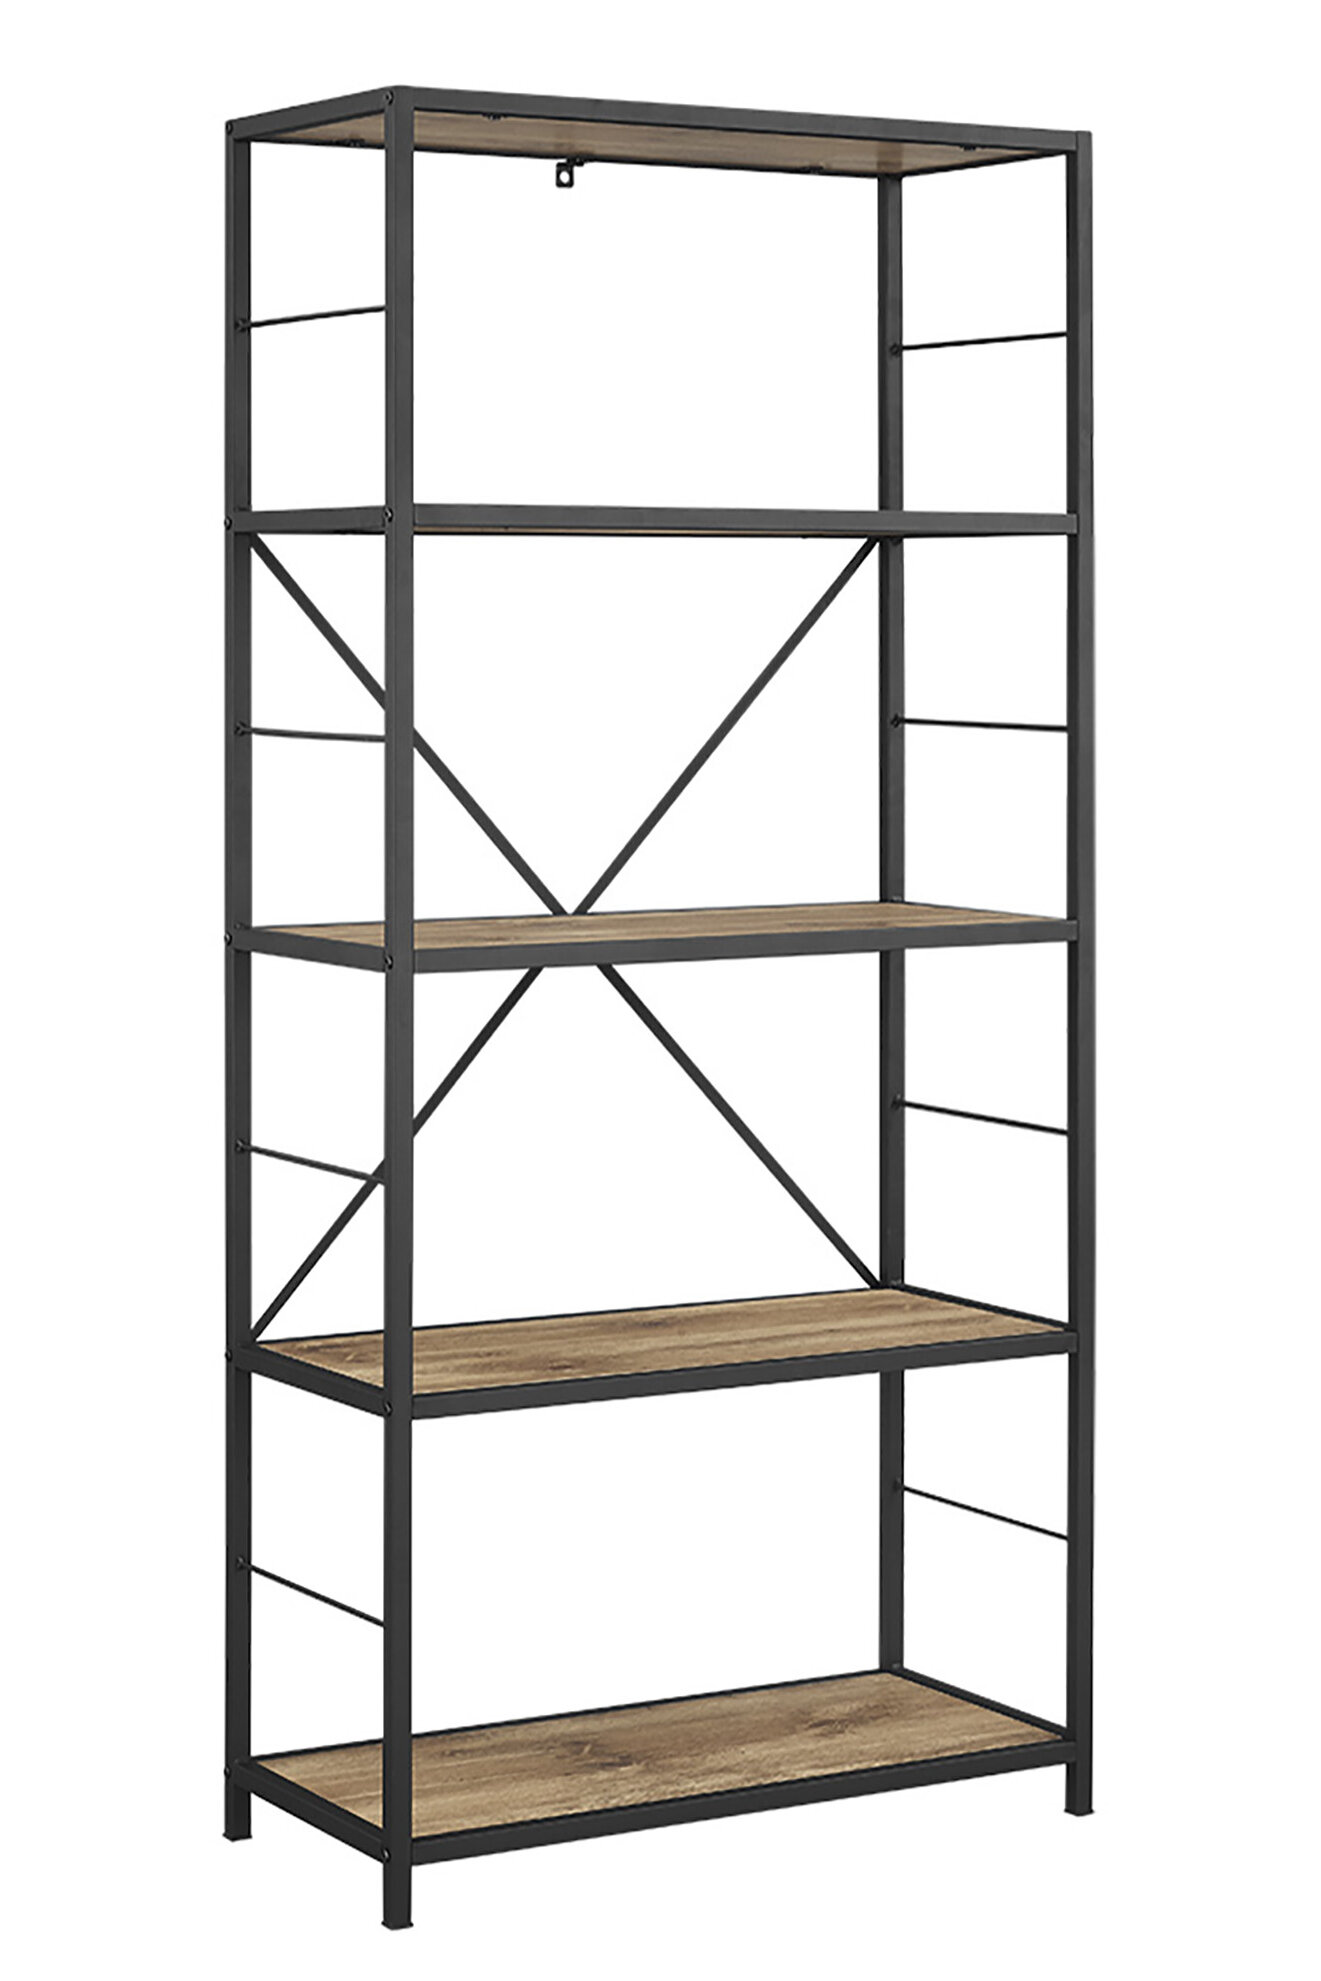 Metal and glass bookcase Black Metal Quickview Wayfair Metal And Glass Shelving Unit Wayfair